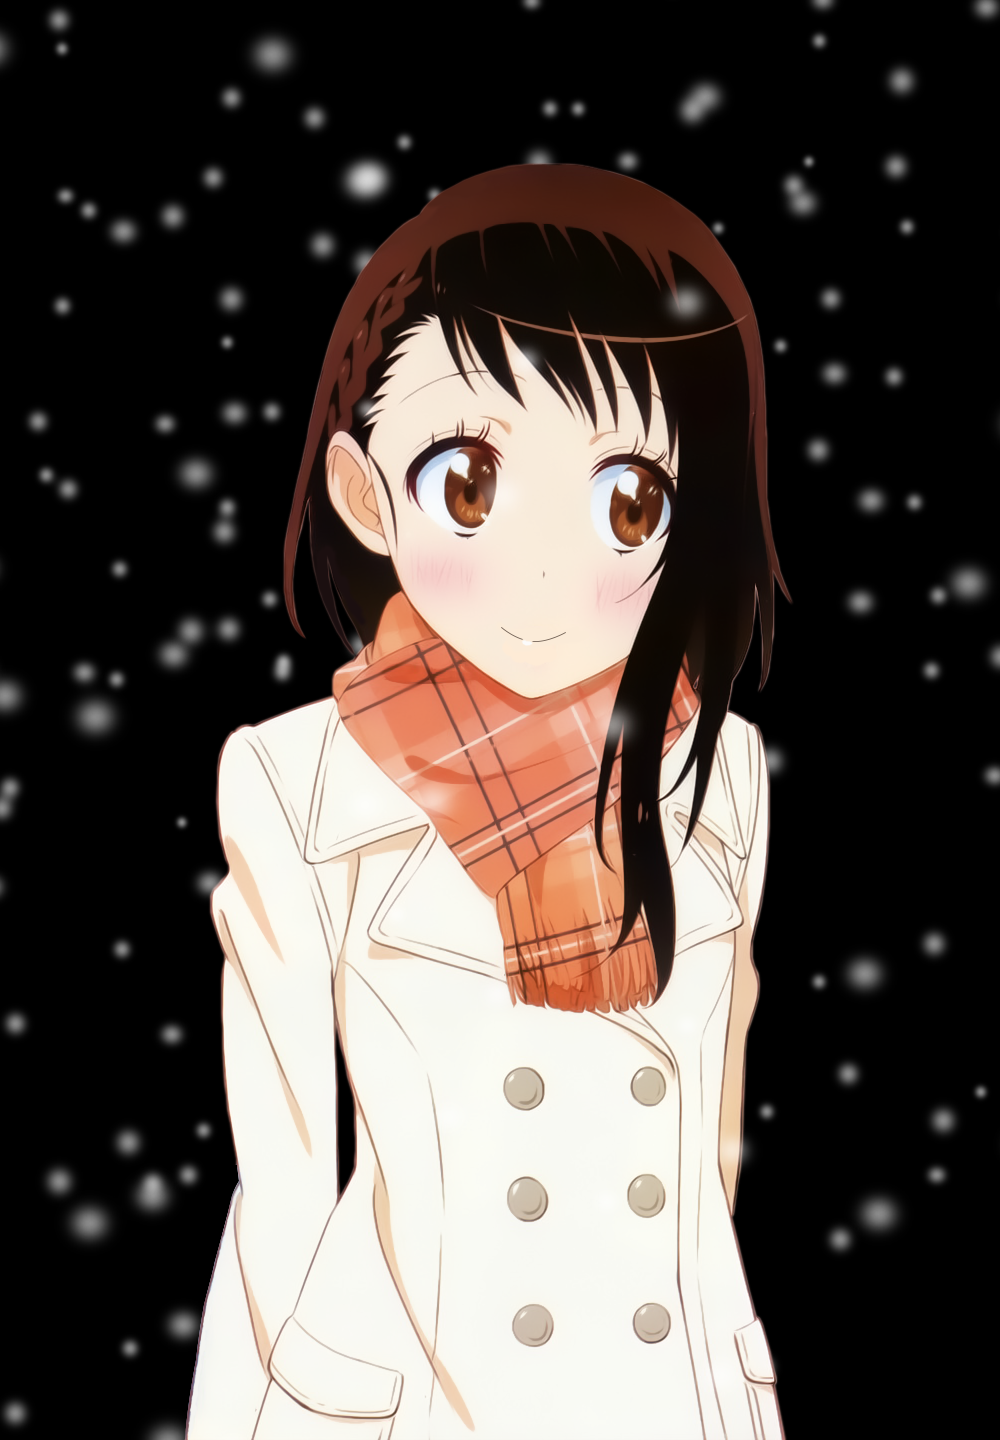 Wallpaper To Phone Kosaki Onodera Gambar Animasi Gadis Anime